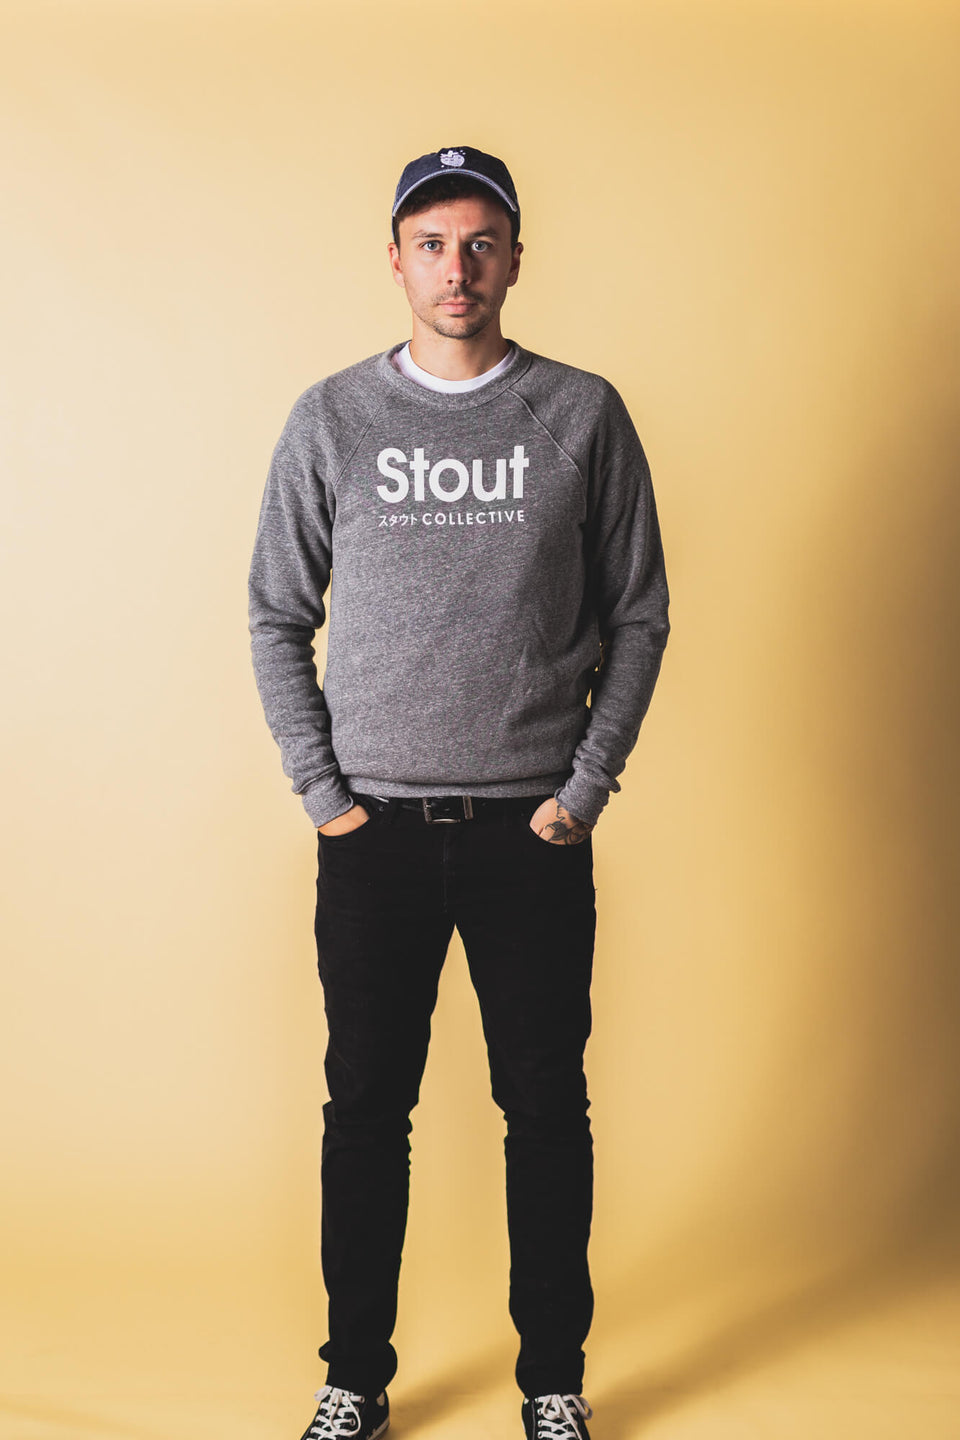 Man Wearing Soft Crewneck Sweatshirt from Stout Collective